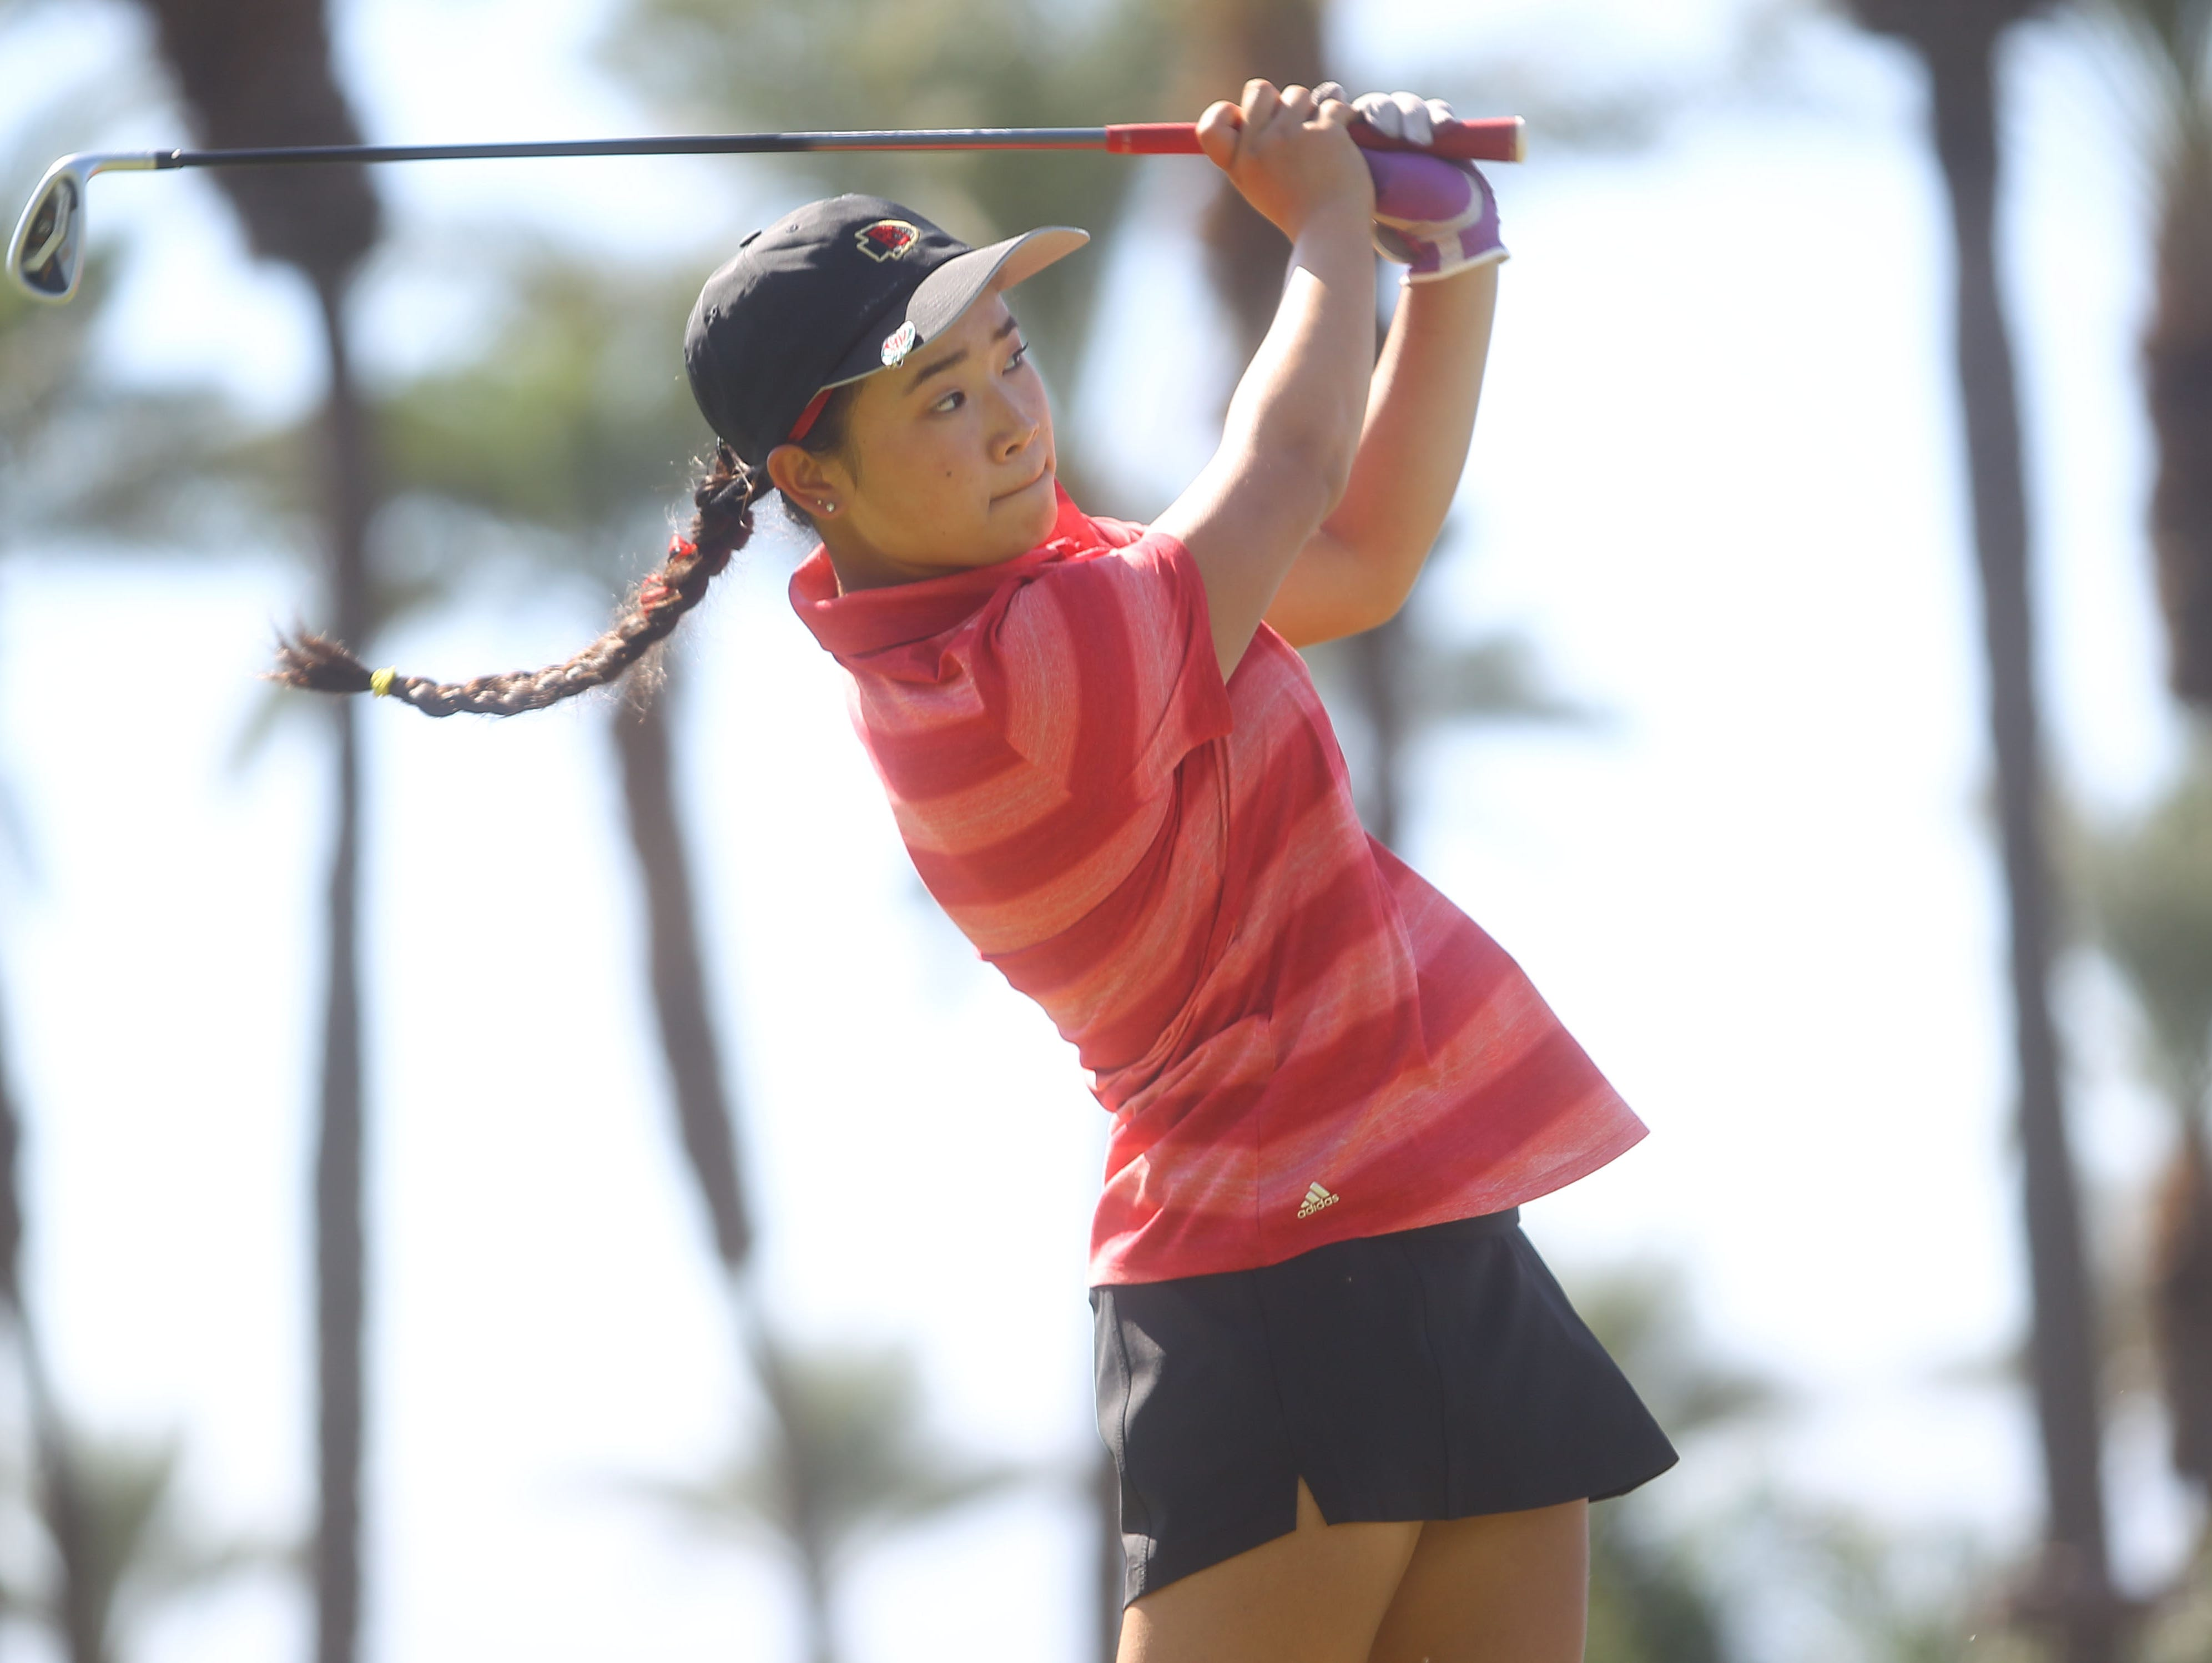 Palm Desert High School's Madison Walker tees of on the 3rd tee during her school's match against Xavier Prep at JW Marriott Desert Springs Resort in Palm Desert.